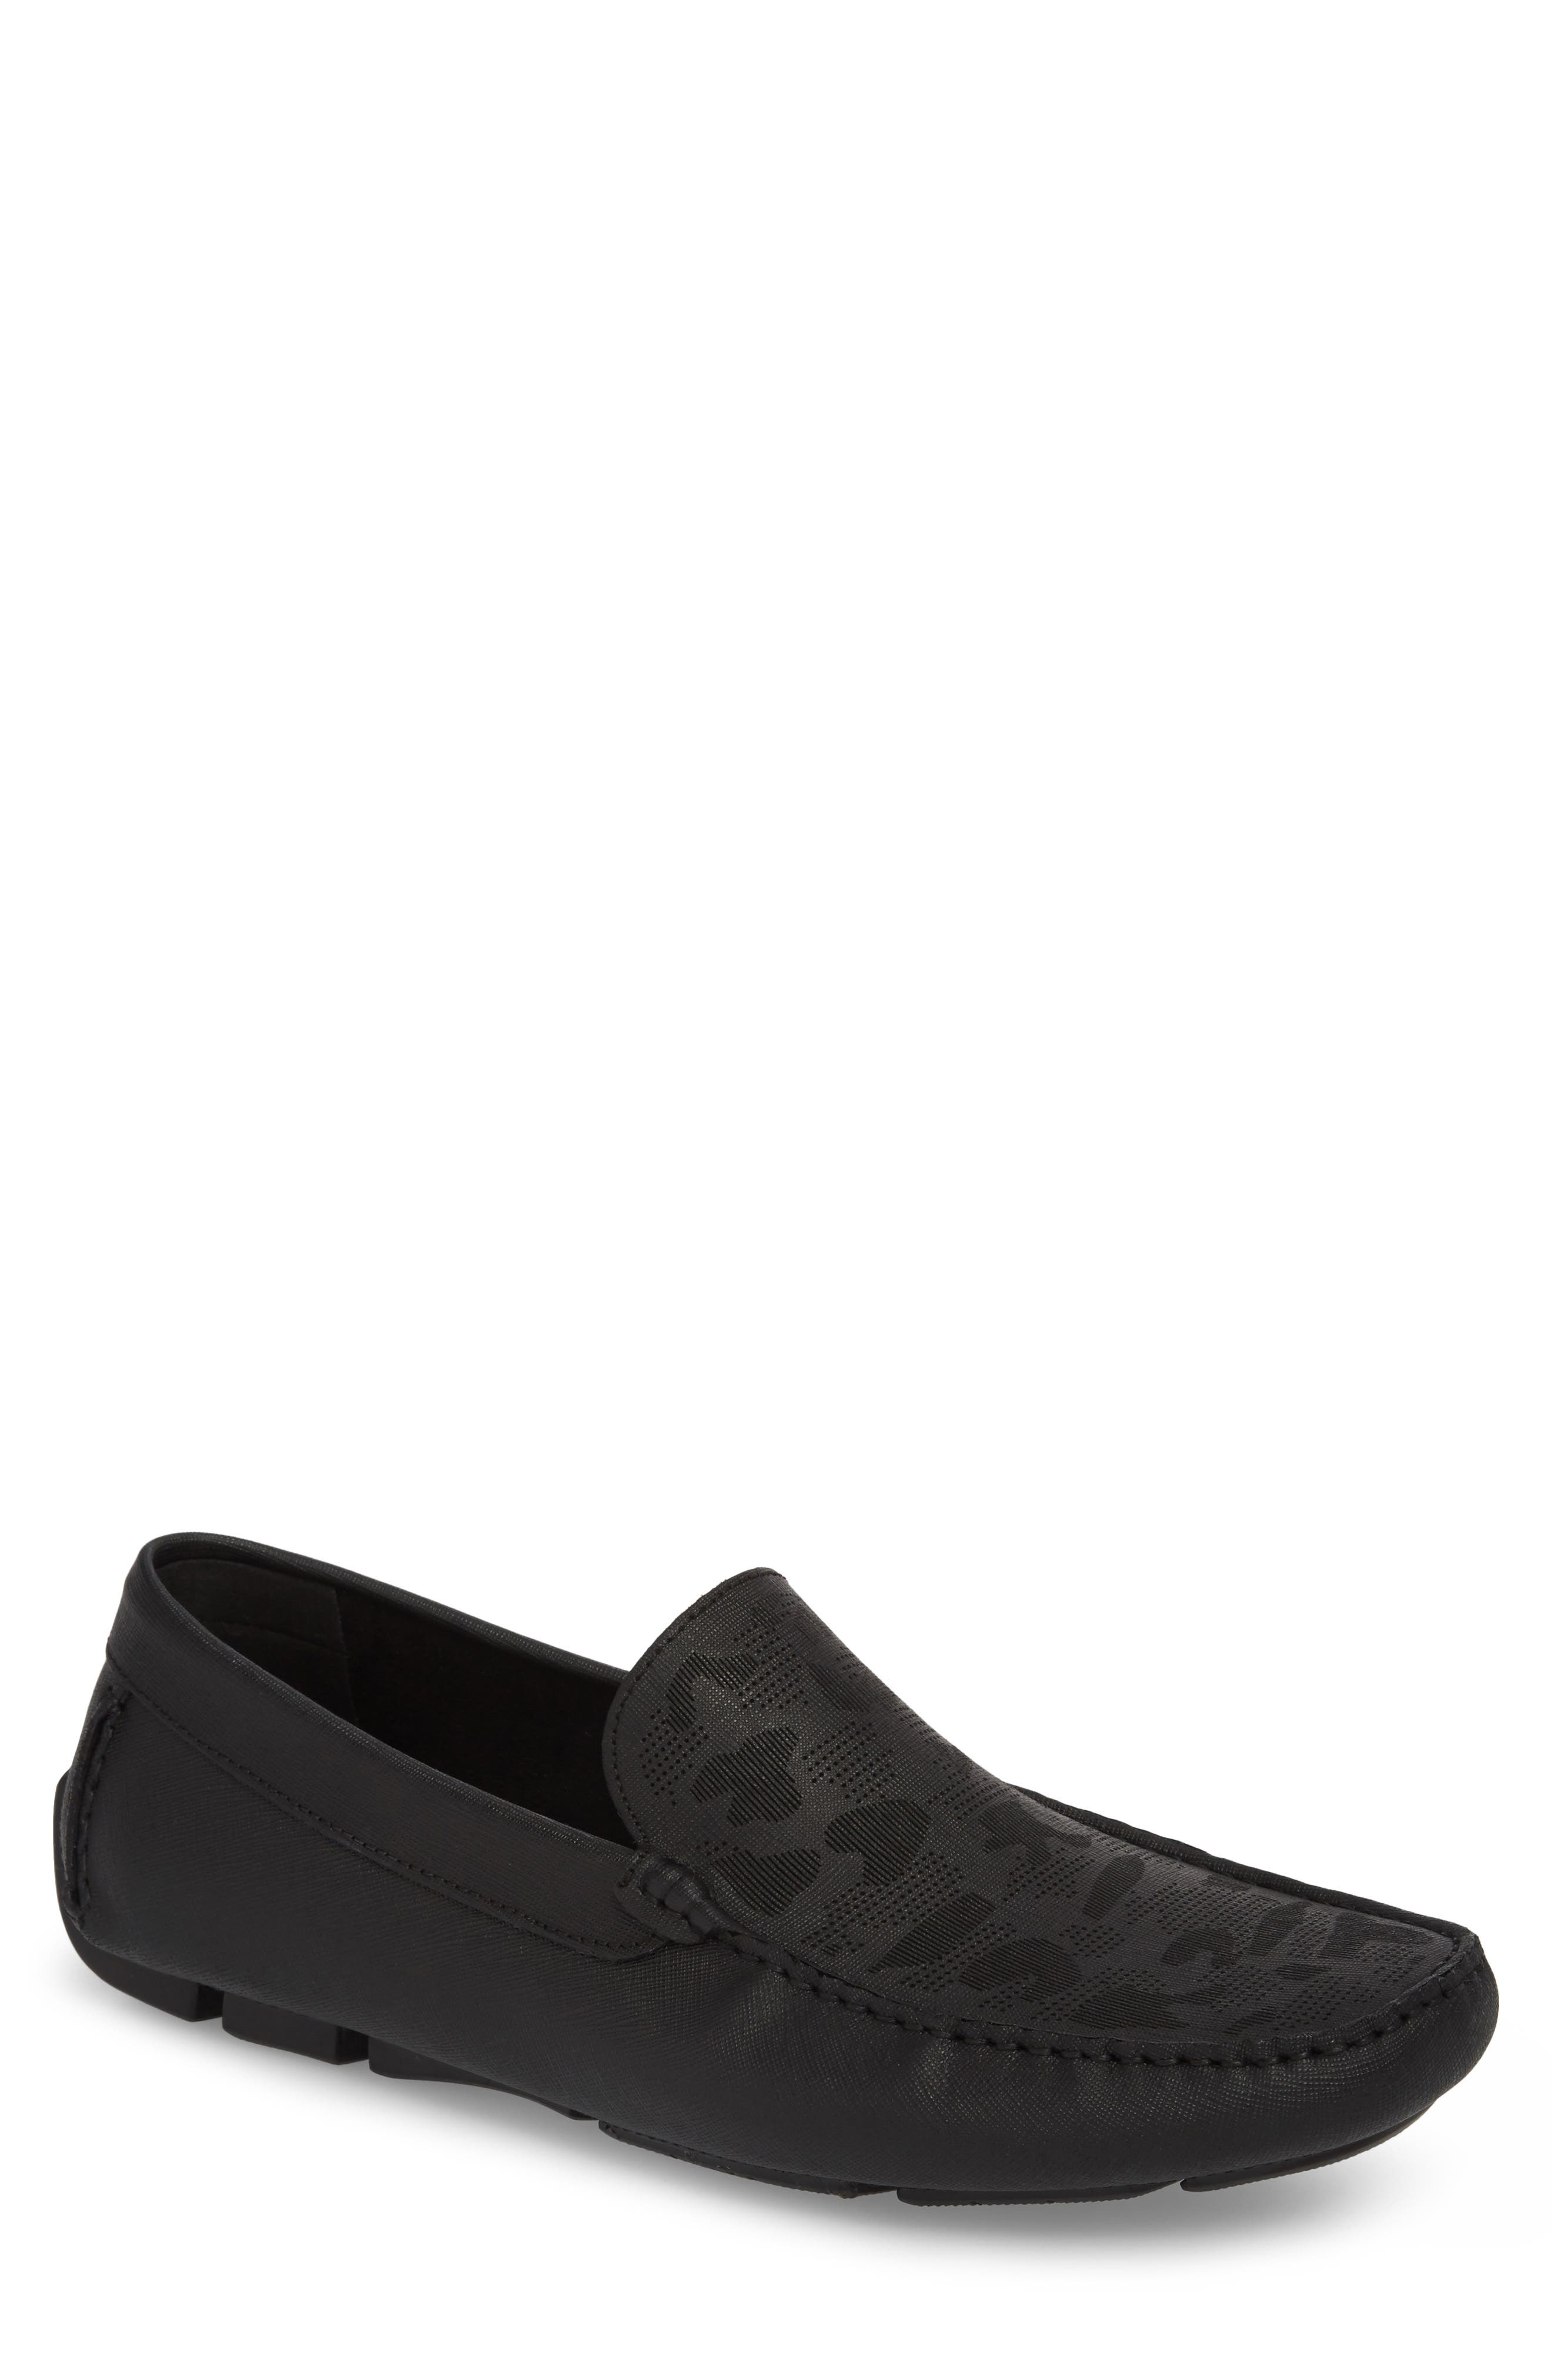 KENNETH COLE NEW YORK Theme Song Driving Shoe, Main, color, 001